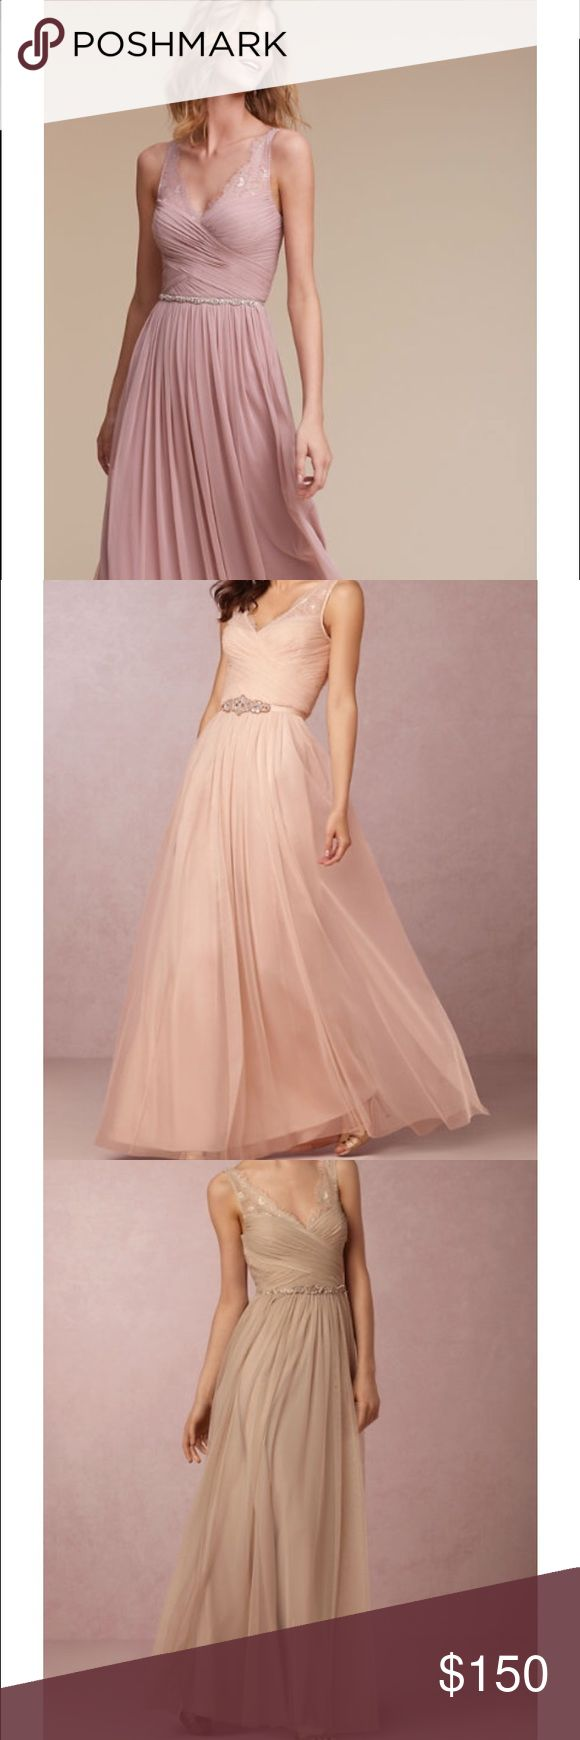 ISO BHLDN Hitherto Fleur size 16 or 18!! Seeking! Sell me your bridesmaid dress!!!! I'm looking for BHLDN Fleur dress gown in size 16 or 18, color Rose Quartz, Blush, Sandstone, or Sea Glass. I really want Rose Quartz but would do the other colors if I can find the size. Can't afford to buy it new  But if you have one hanging in the closet comment and let me know, lets make a deal! These Hitherto dresses sell at Anthropolgie, BHLDN. BHLDN Dresses